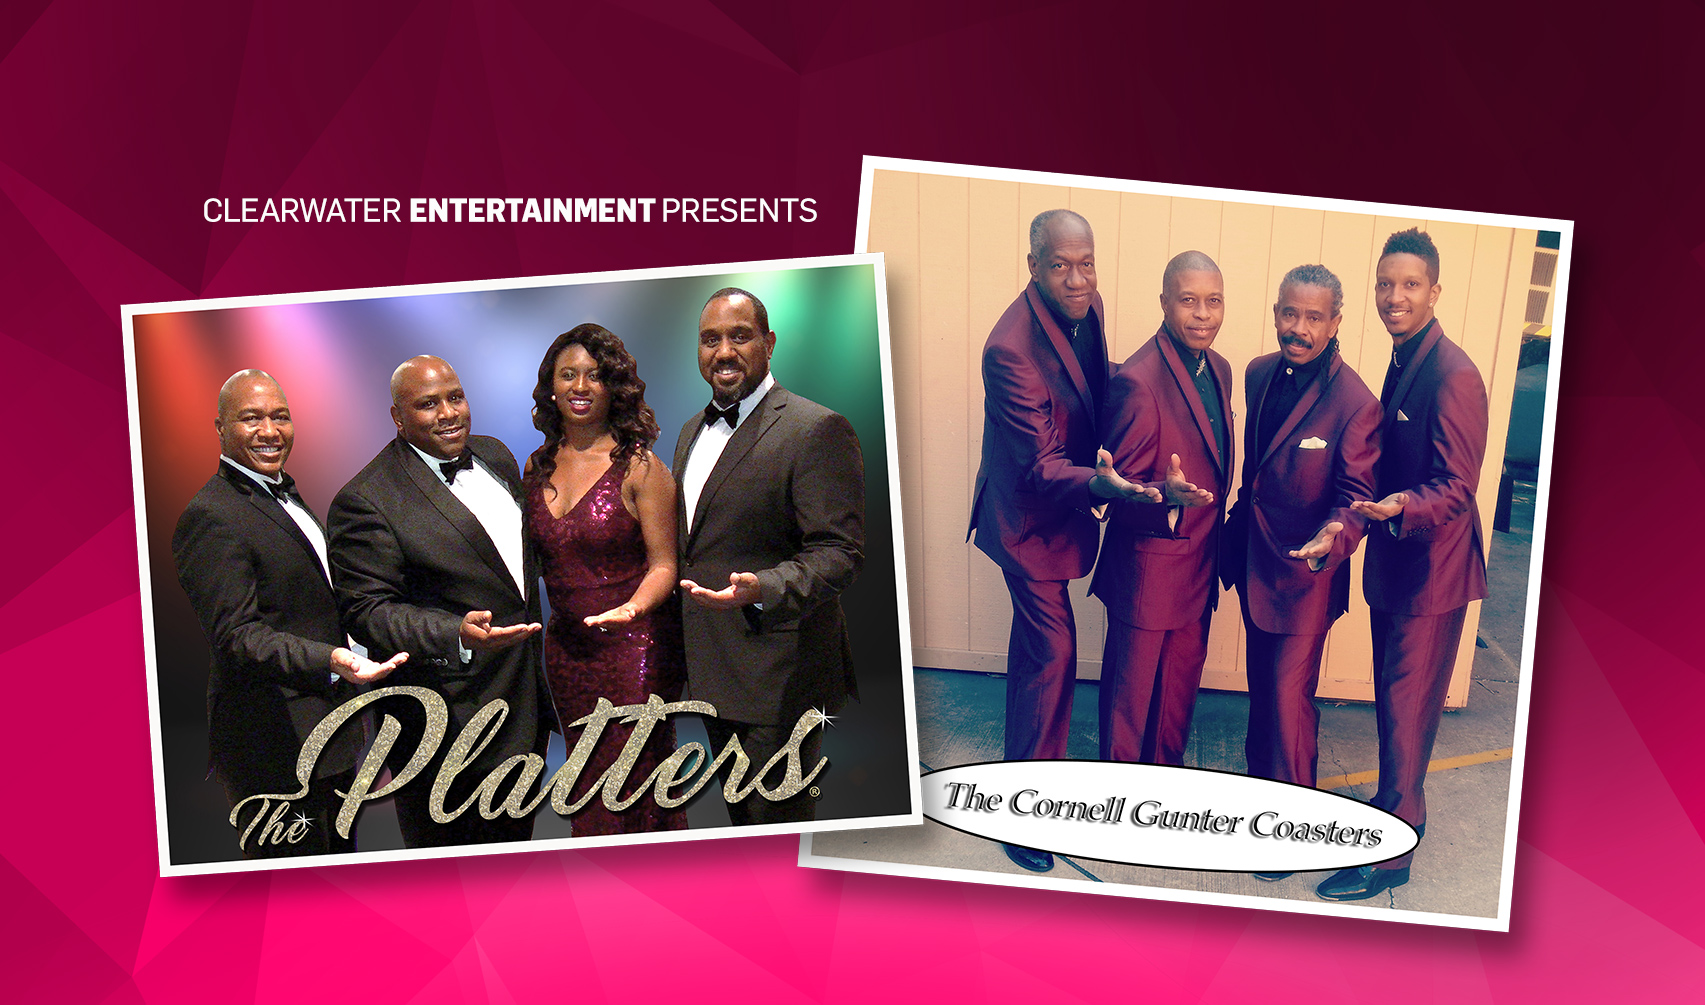 The Platters & The Coasters October 24th